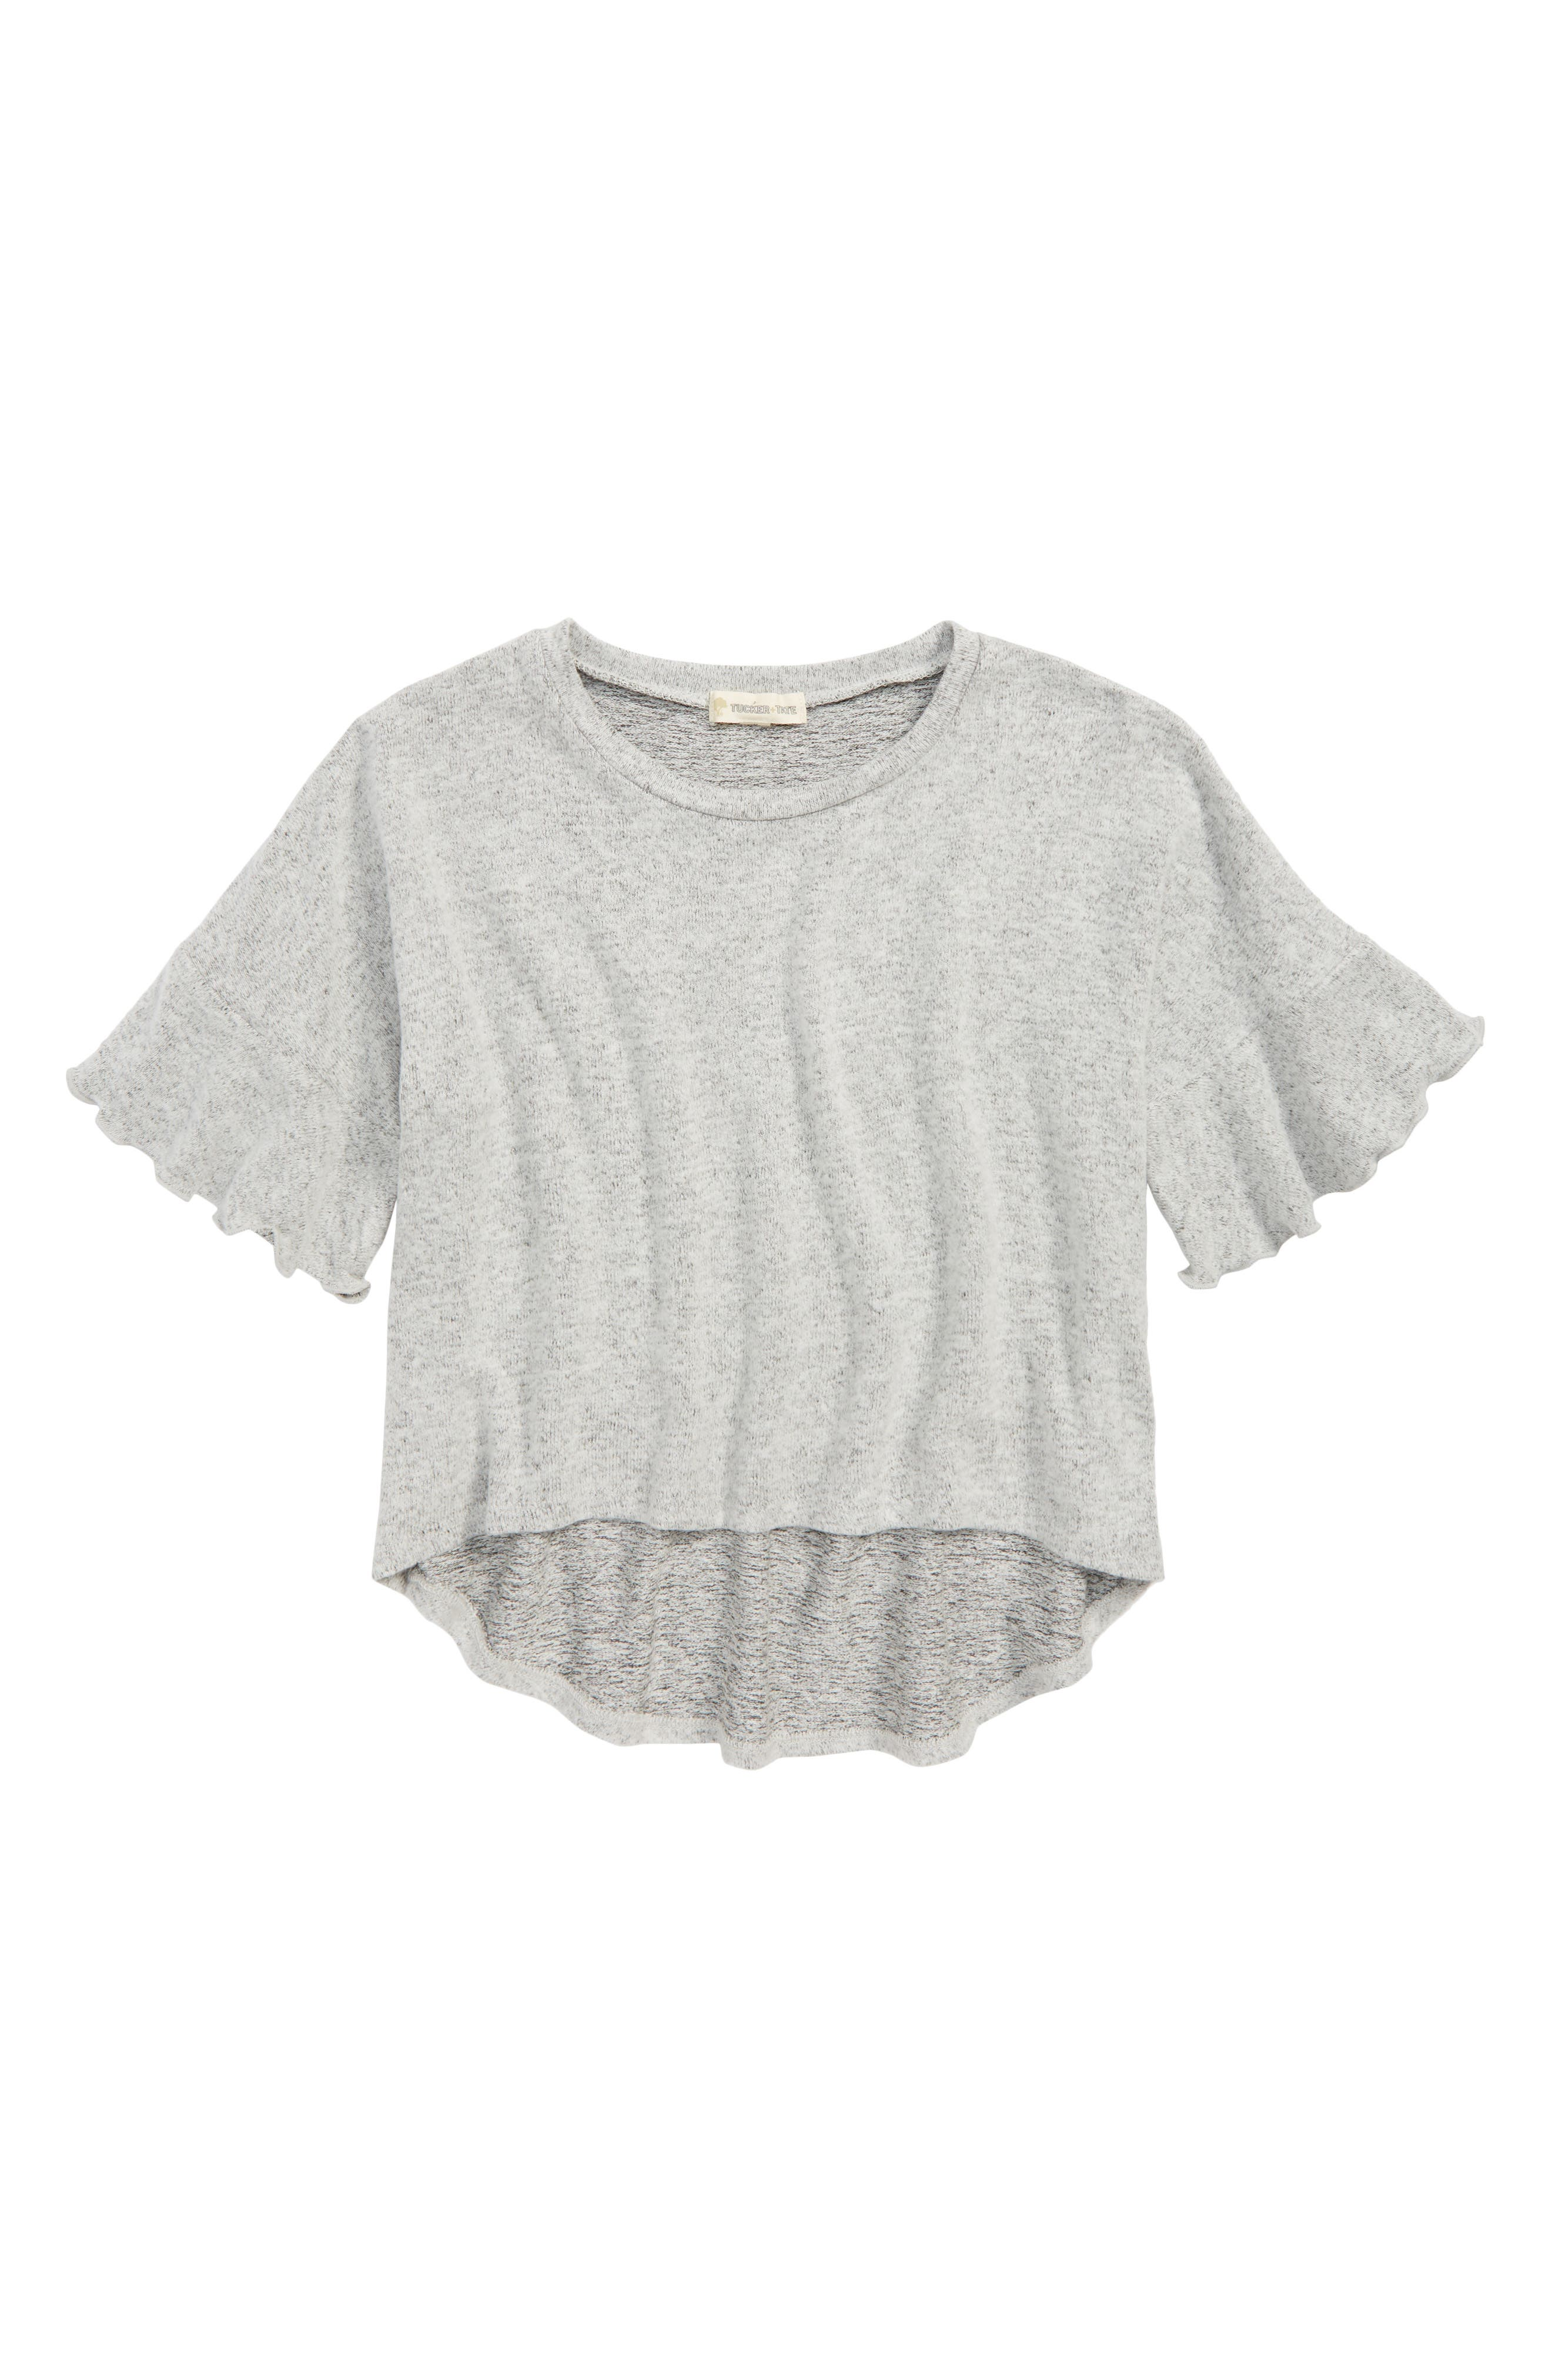 Ruffle Sleeve Knit Top,                         Main,                         color, 030